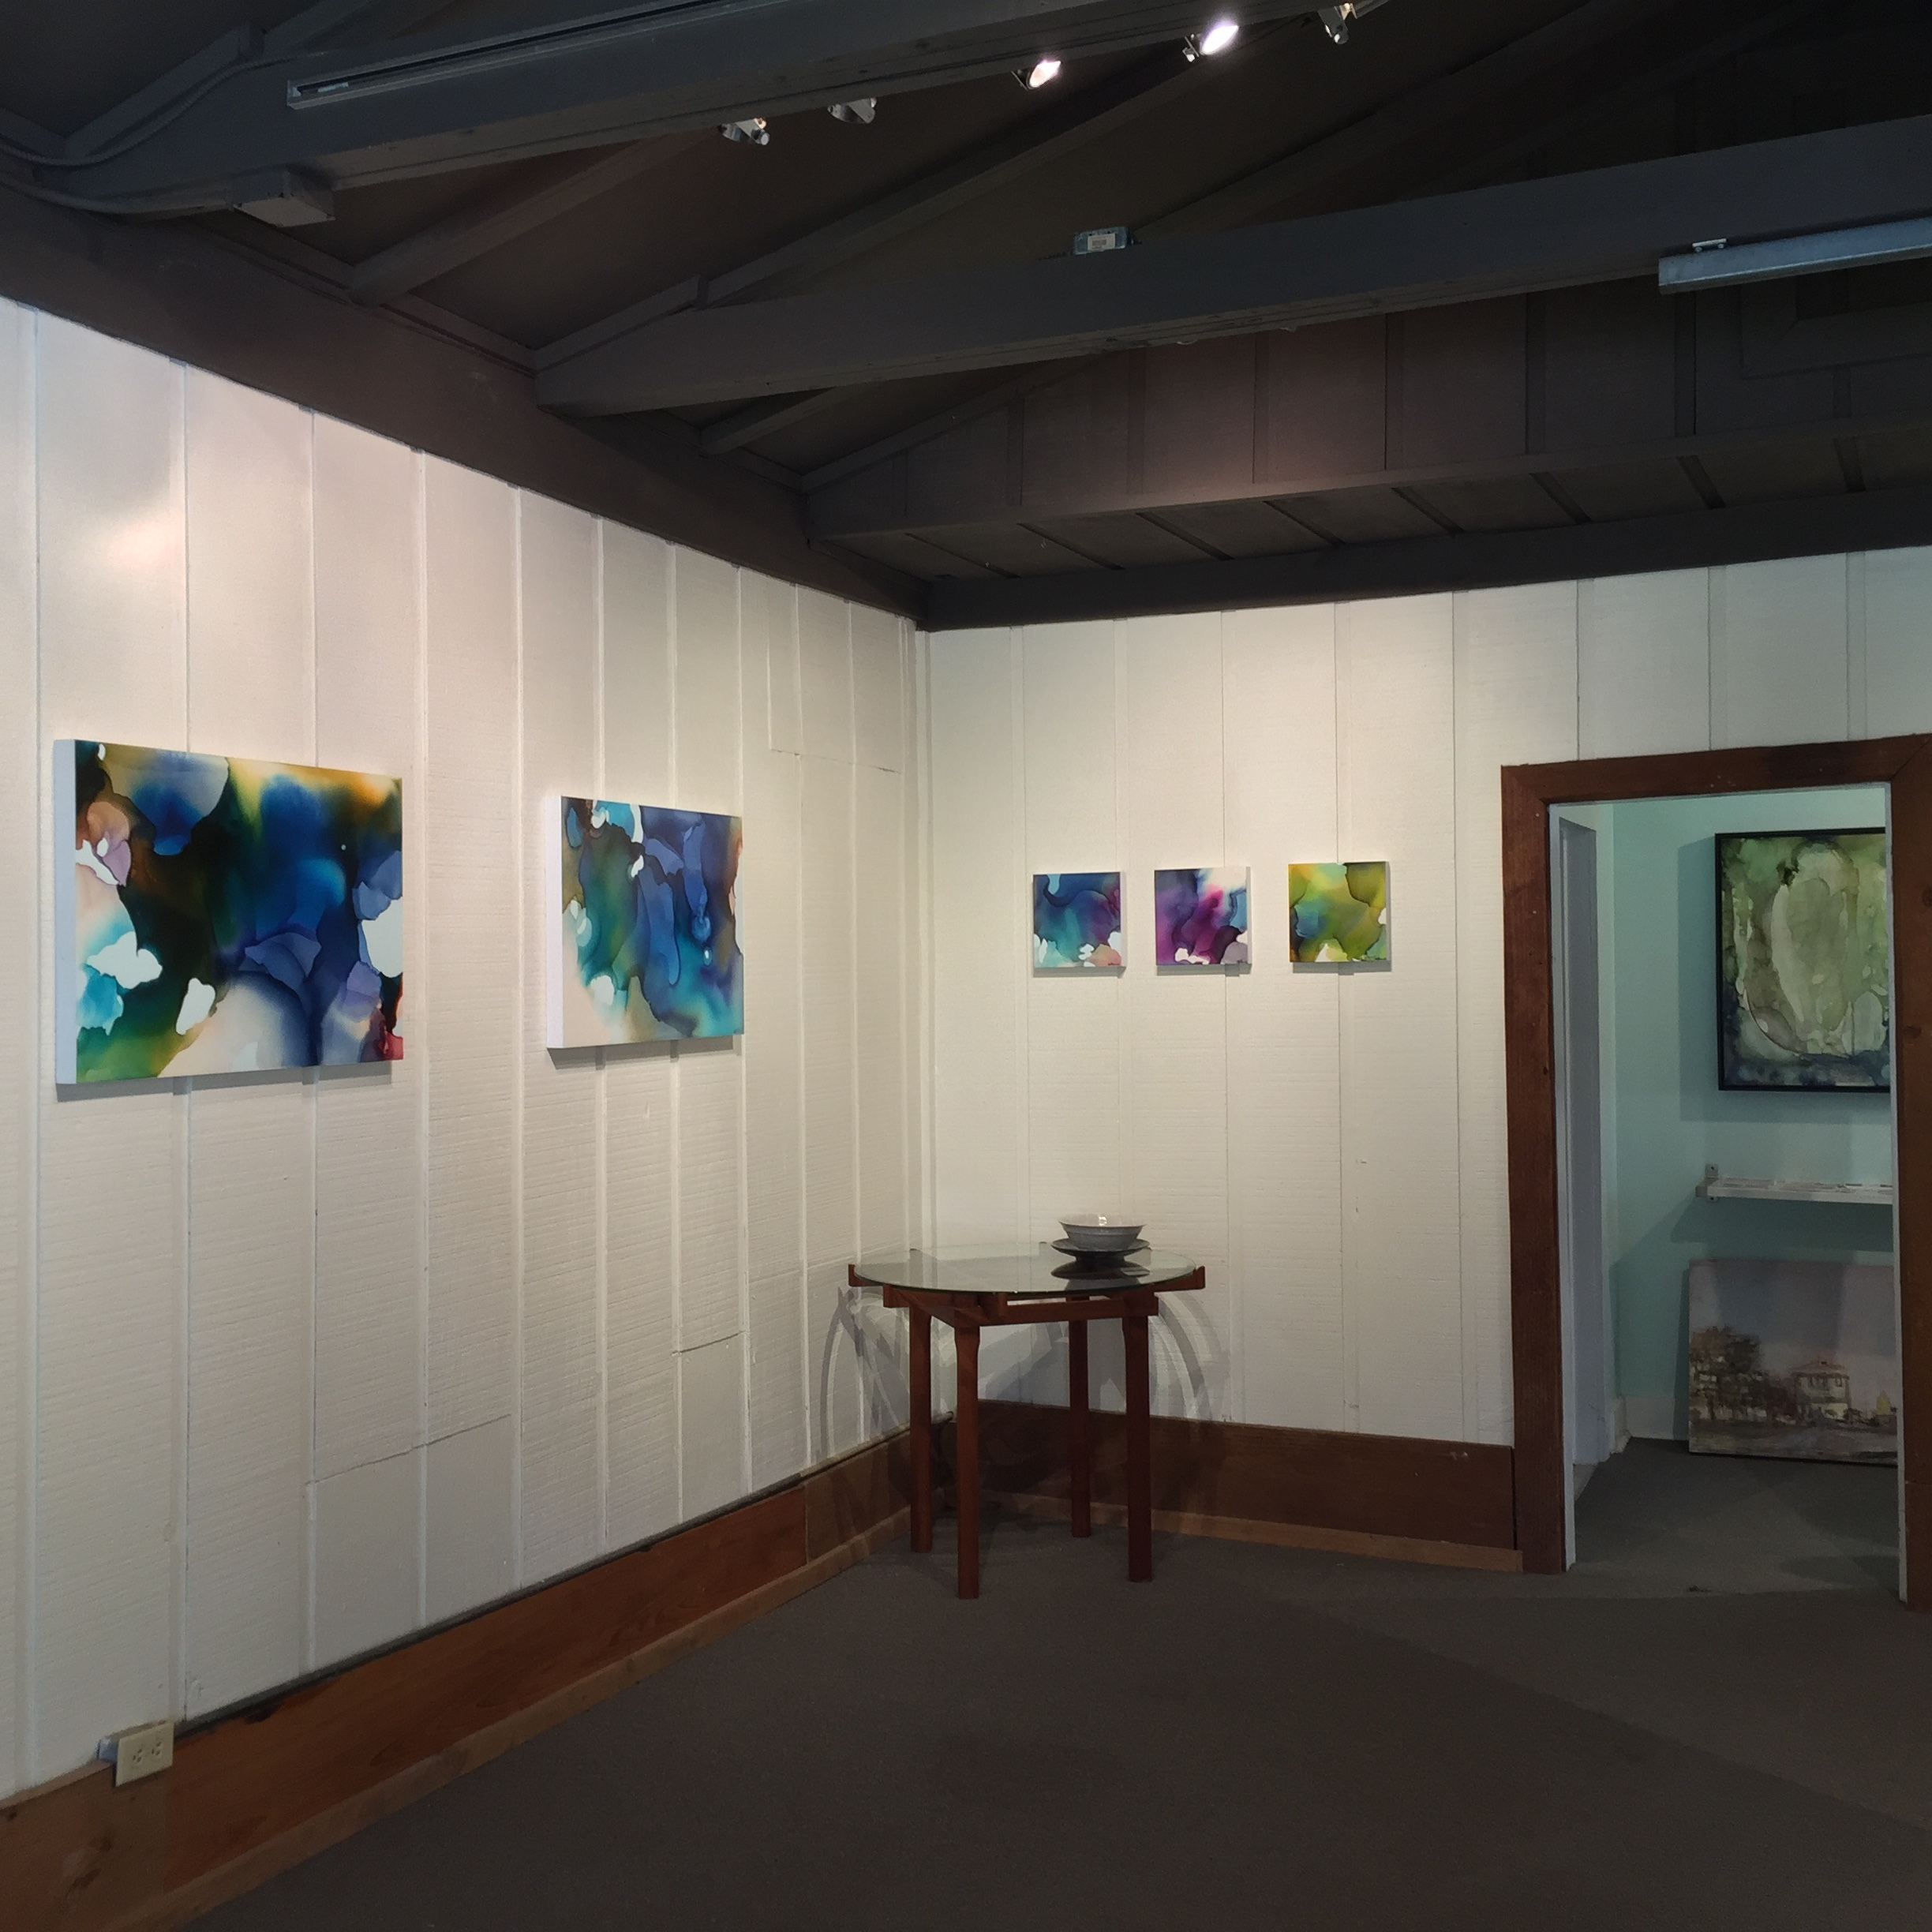 Frameworks Gallery , Baton Rouge, LA. Impromptu show of work during the Great Flood of August 2016.